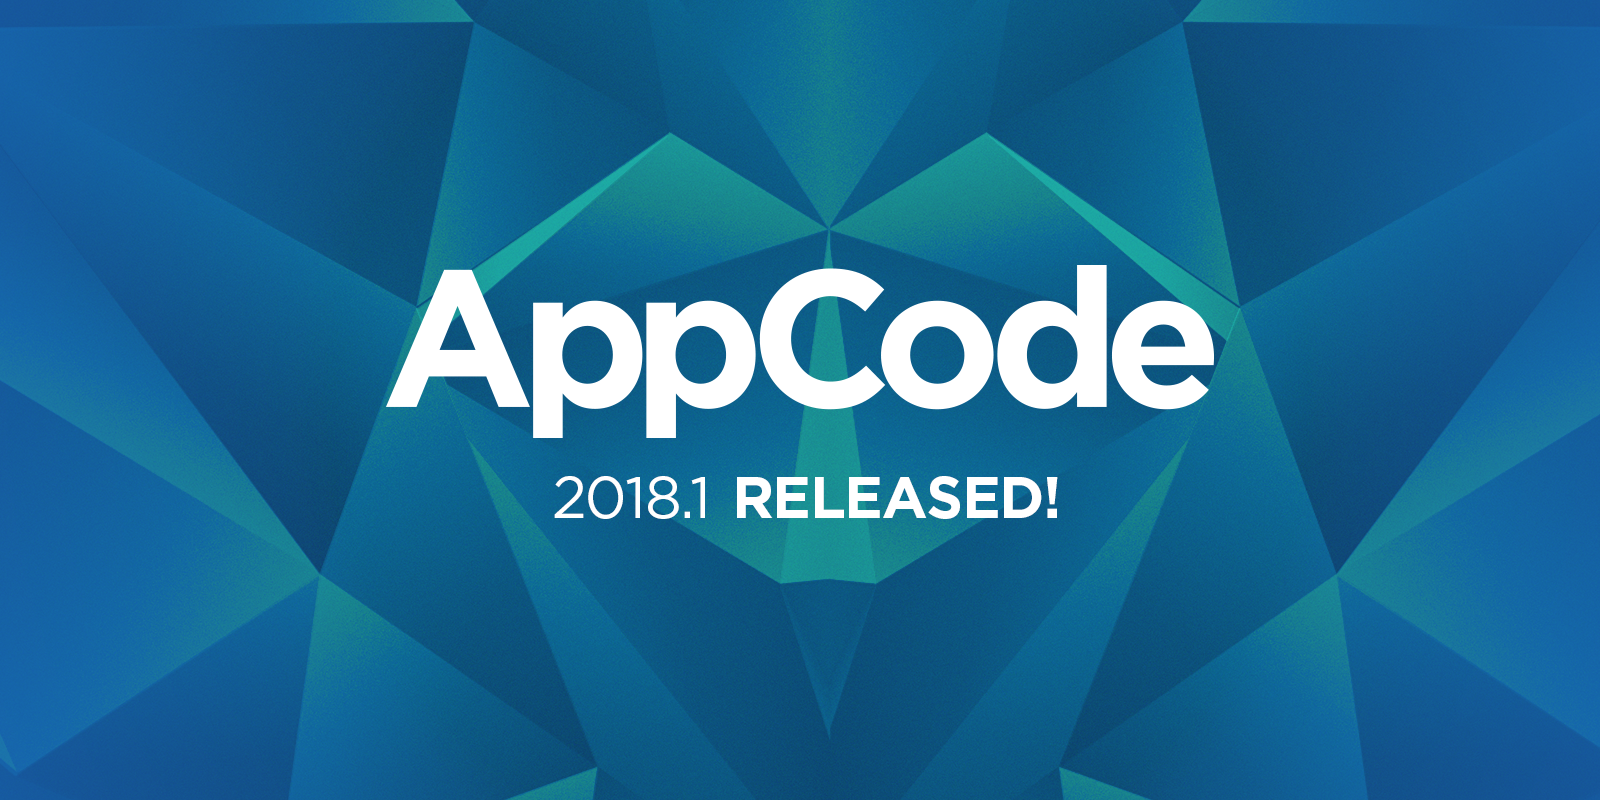 What's new in AppCode 2018.1